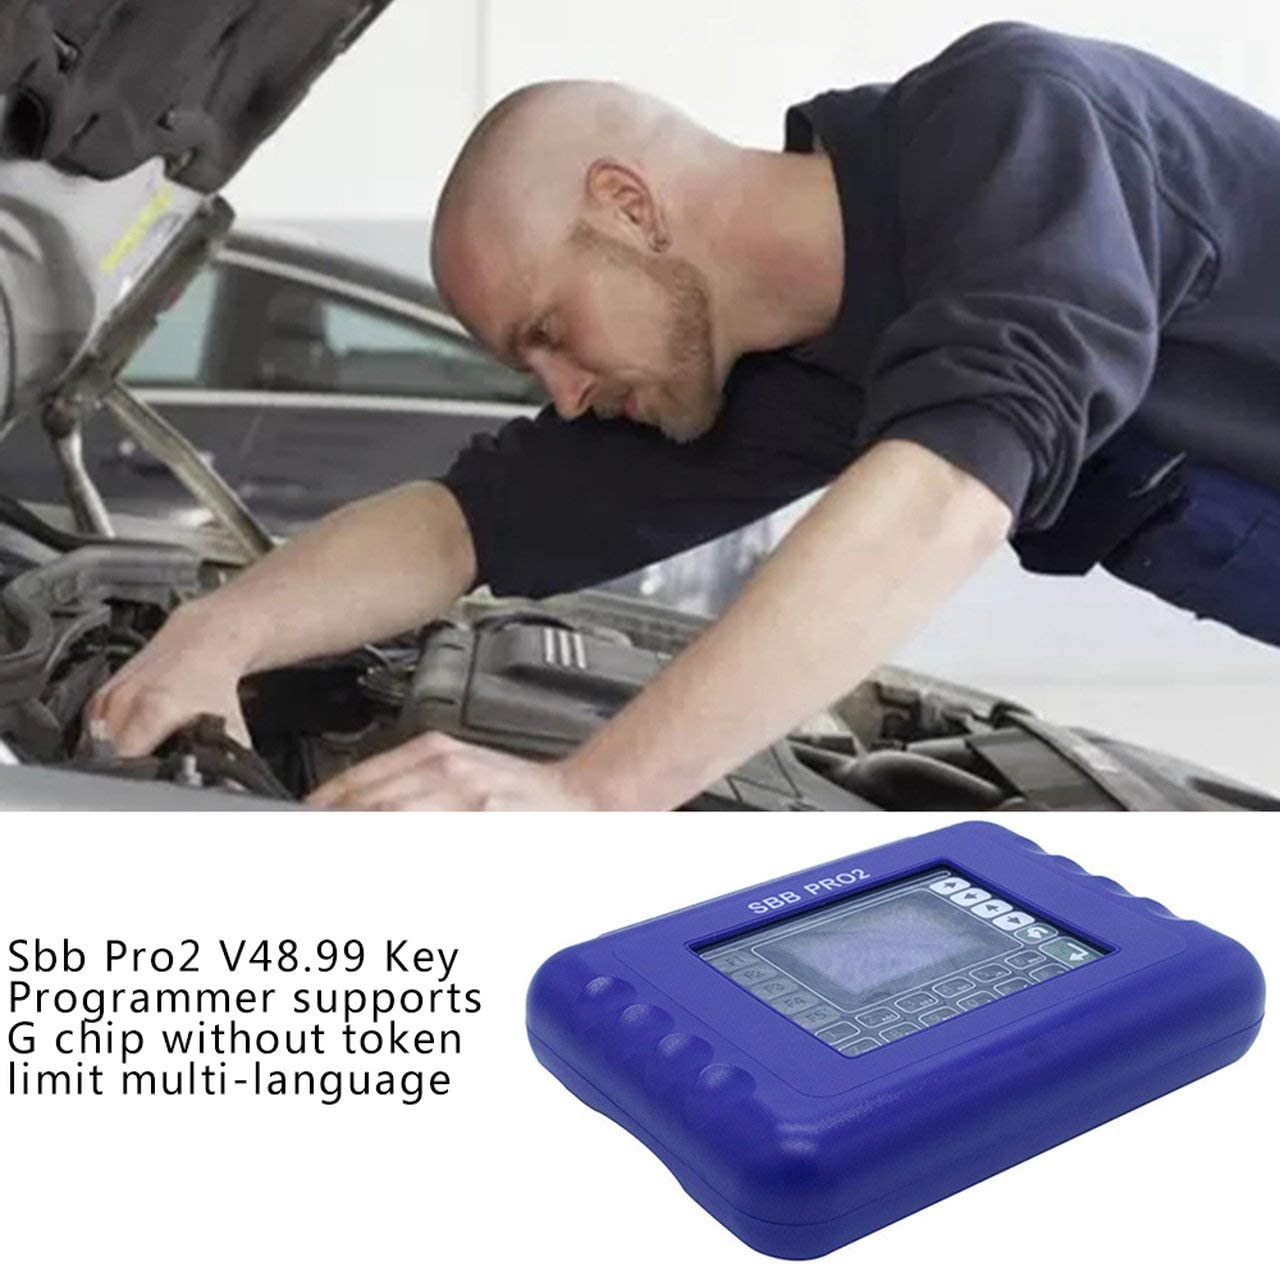 Unitedheart Sbb Pro2 V48.99 Key Programmer Supports G Chip Without Token Limit Multi-Language,Sbb Pro2 Progarmmer Tool Updated to V48.99 Sbb Pro2 Main Unit